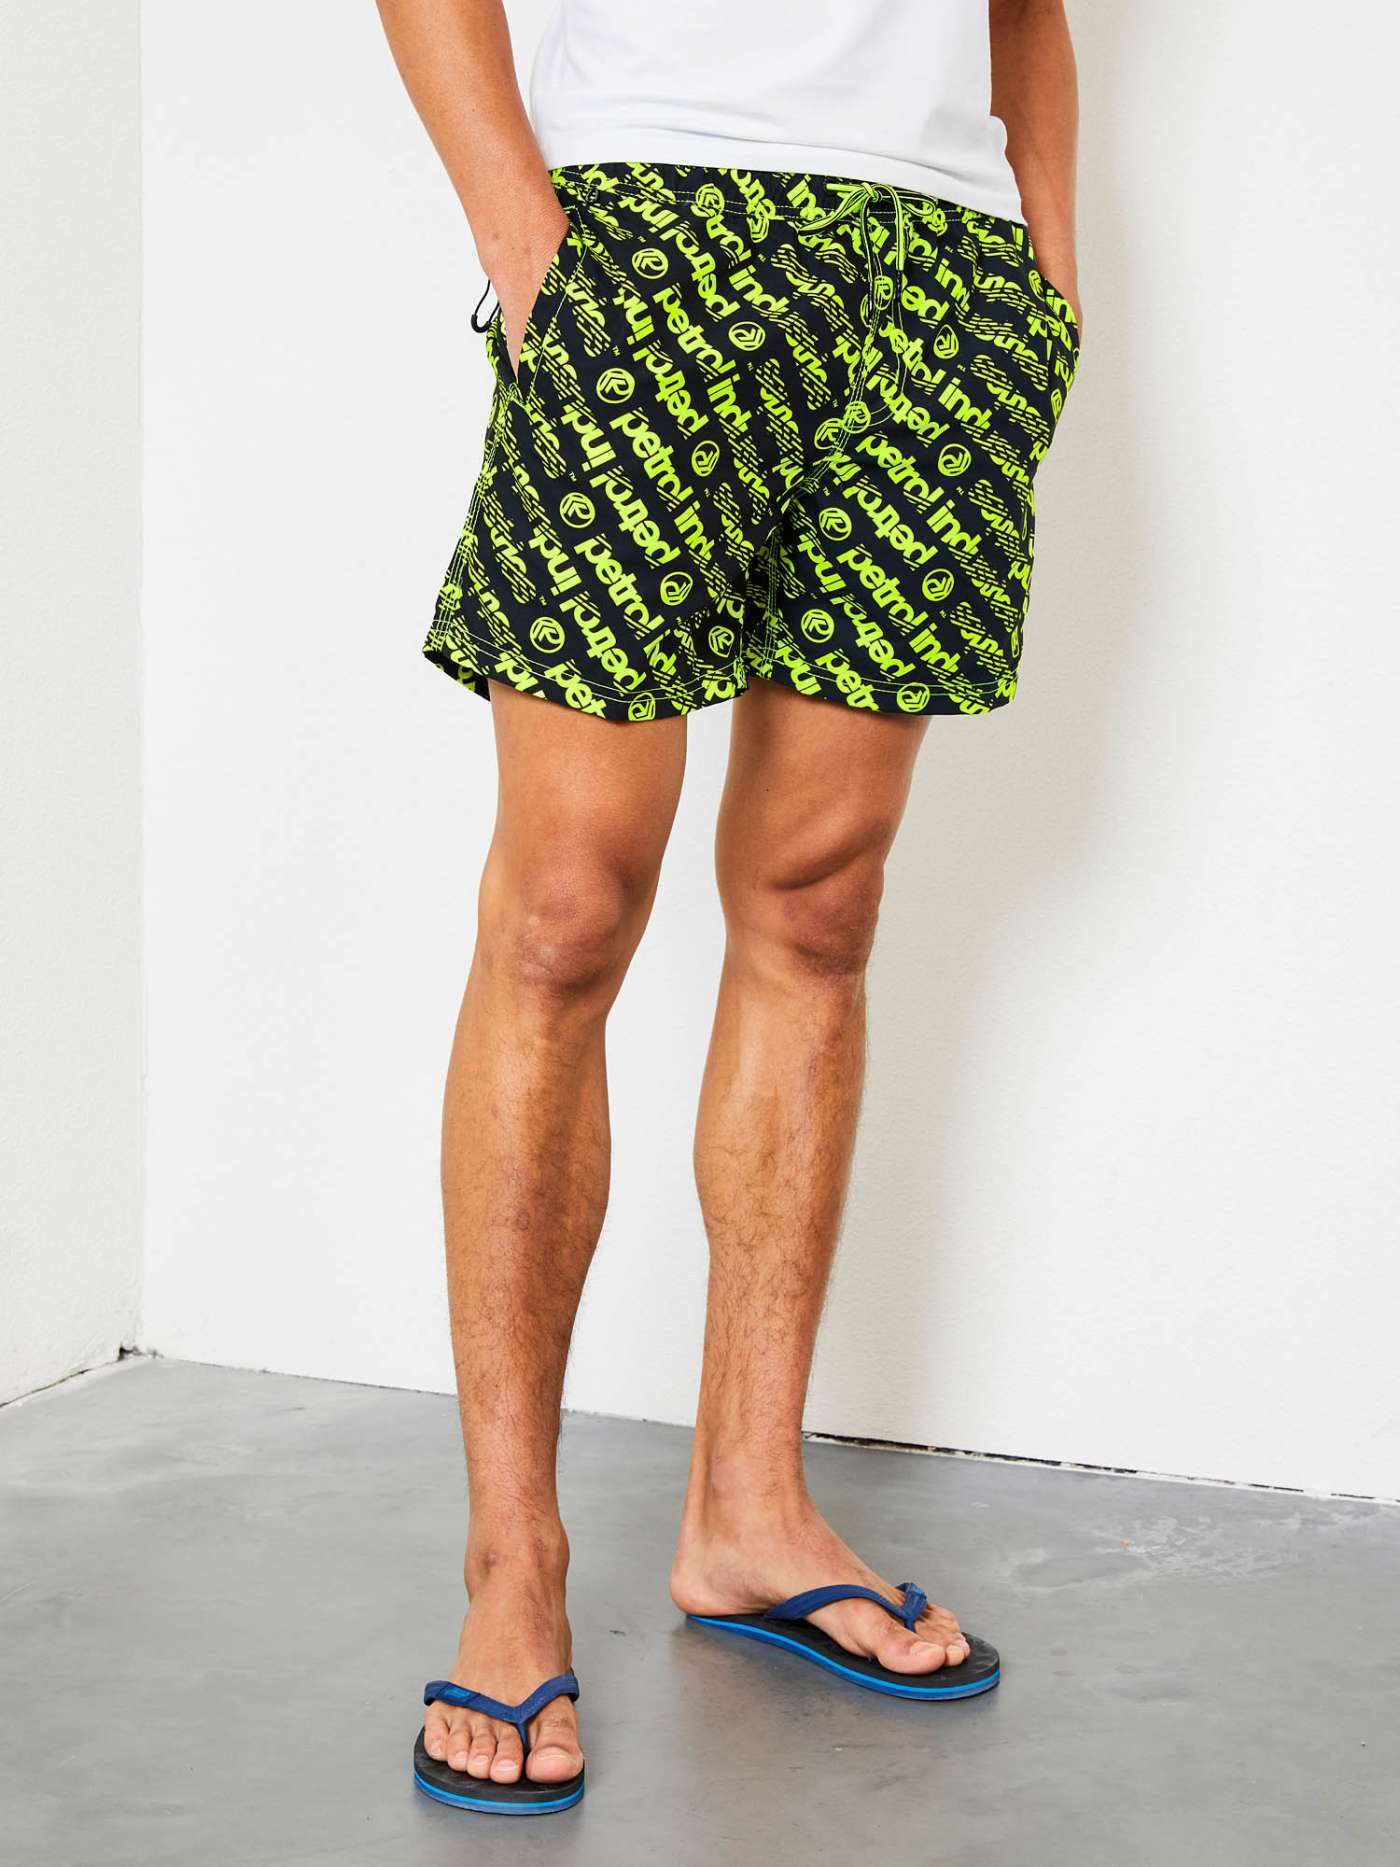 Swimming shorts with artwork